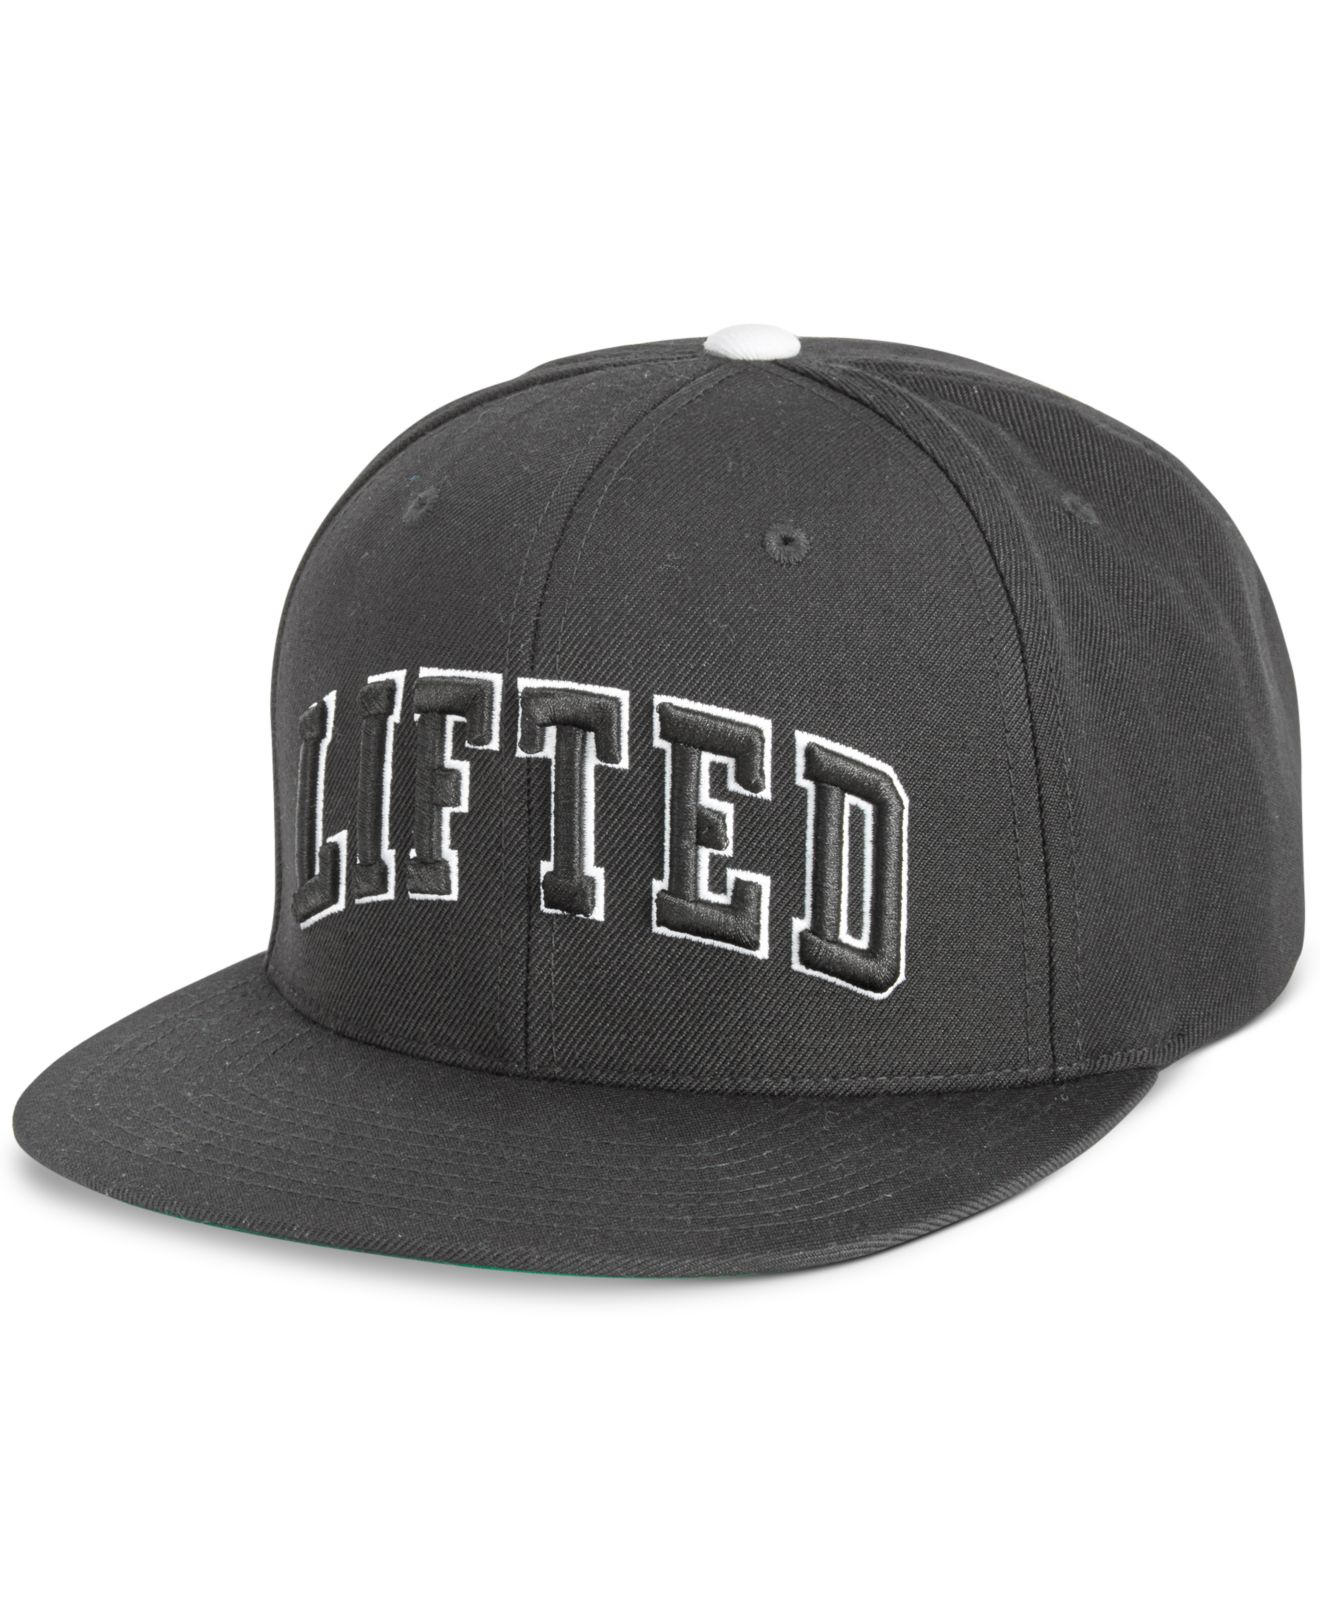 76bea2c3715 Lyst - LRG Men s Lifted Embroidered Snapback Hat in Black for Men